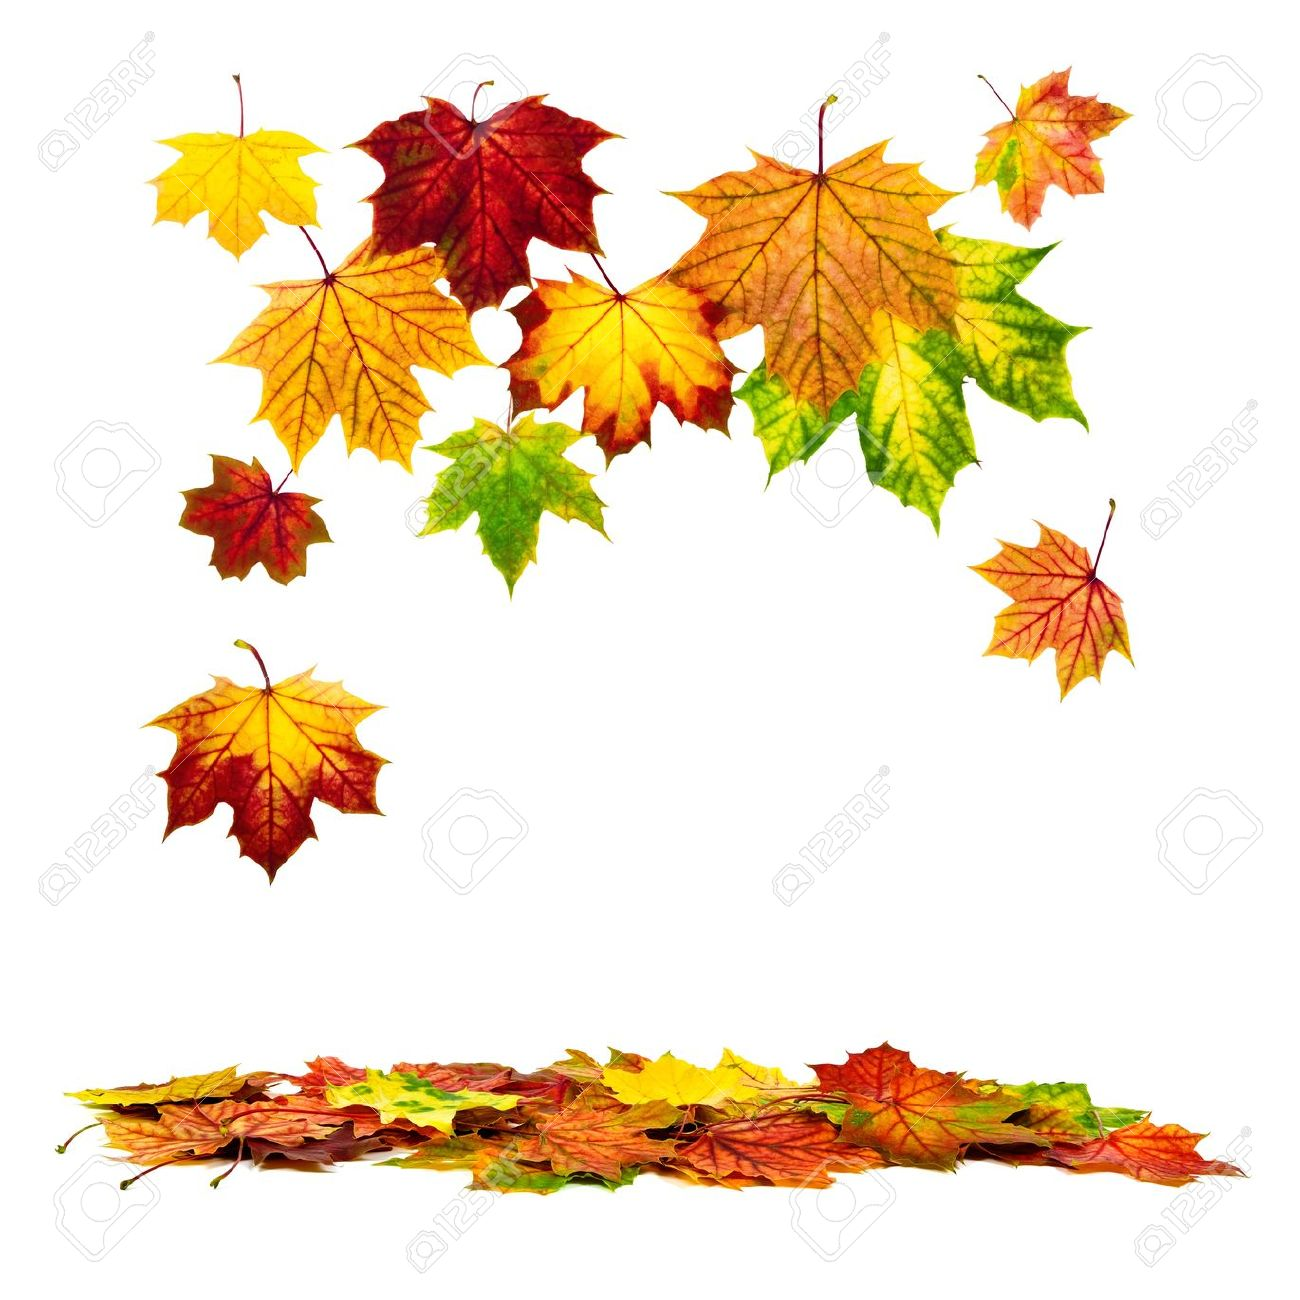 Autumn Tree Leaf Fall Animated Wallpaper Tiempo De Oto 241 O Las Peque 241 As Cosas Del Cole